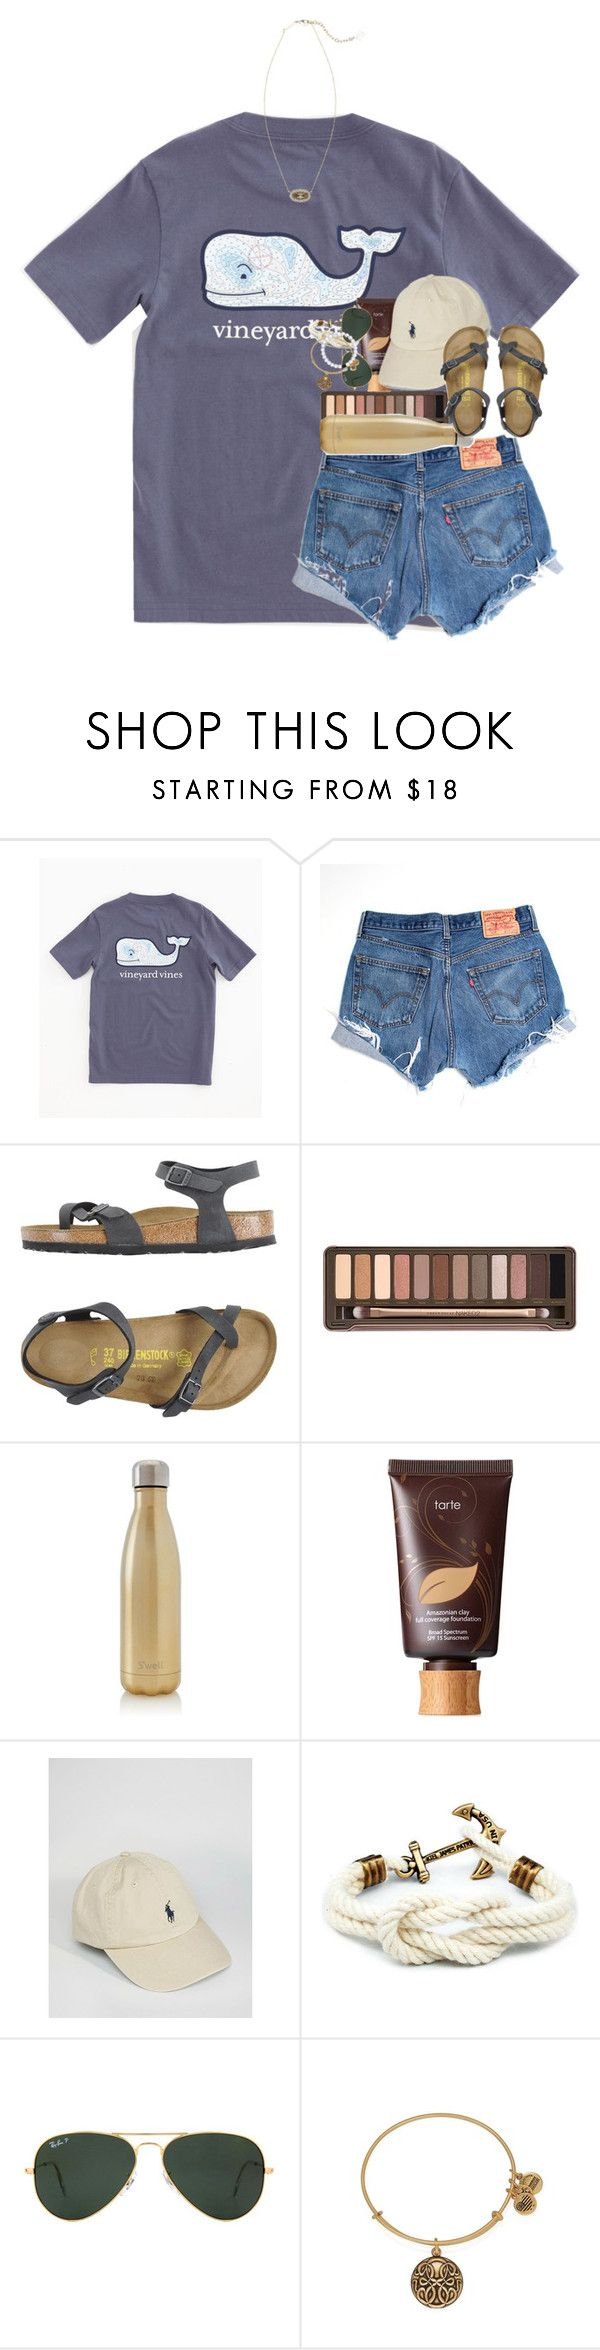 """""""day one!!"""" by ellaswiftie13 ❤ liked on Polyvore featuring Vineyard Vines, Levi's, Birkenstock, Urban Decay, S'well, tarte, Polo Ralph Lauren, Ray-Ban, Alex and Ani and Kendra Scott"""